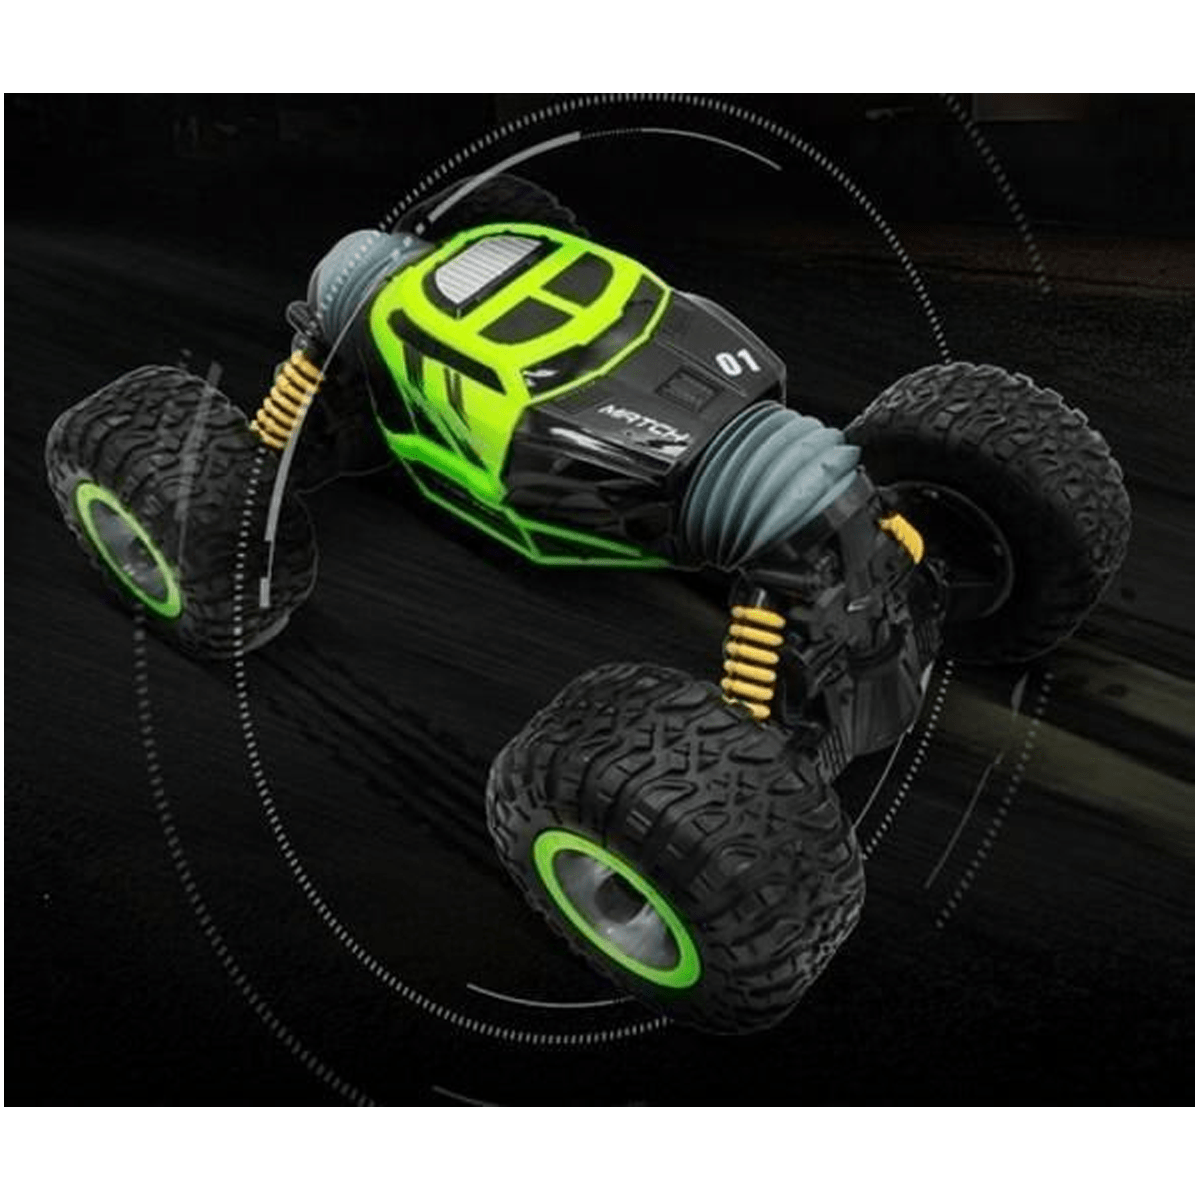 Mytoys All Terrain Car Hyper Actives Stunt Contrl Two Sided Rolling - Green